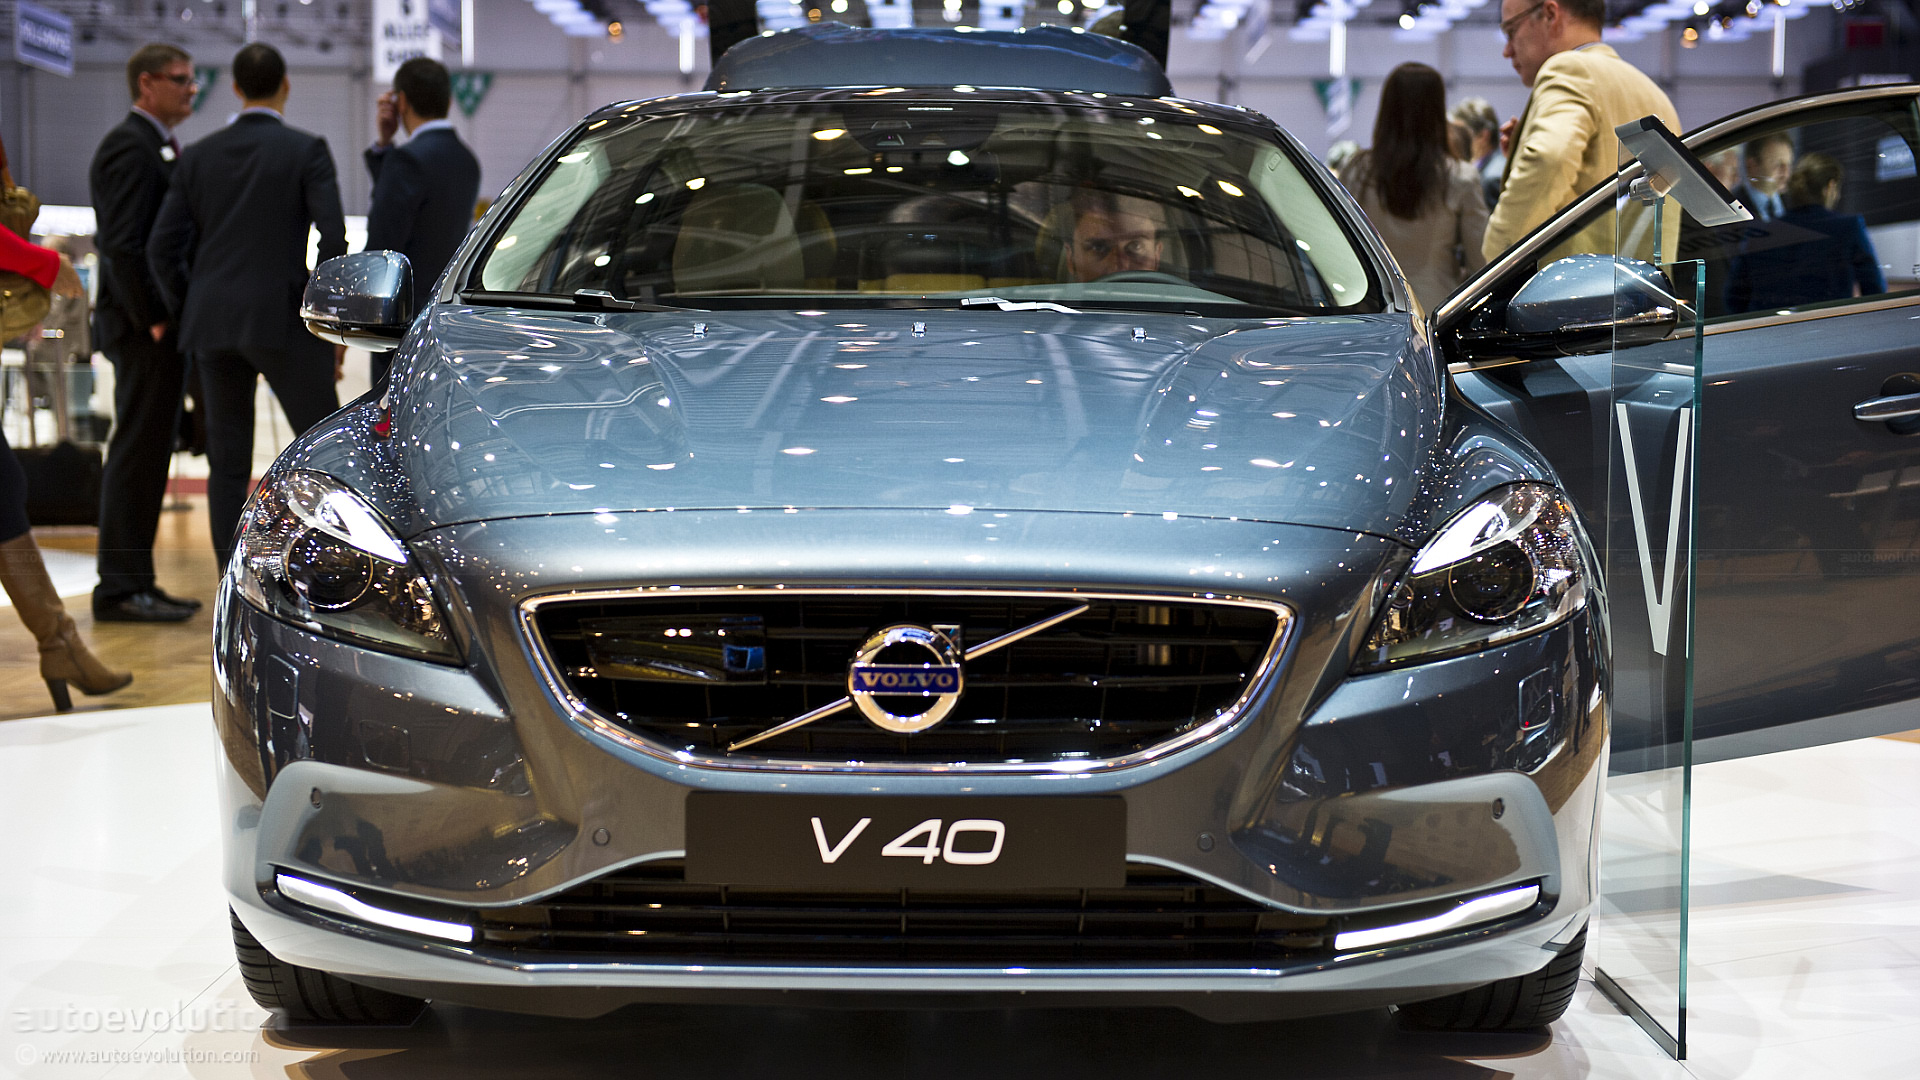 Geneva 2012: Volvo V40 [Live Photos] - autoevolution